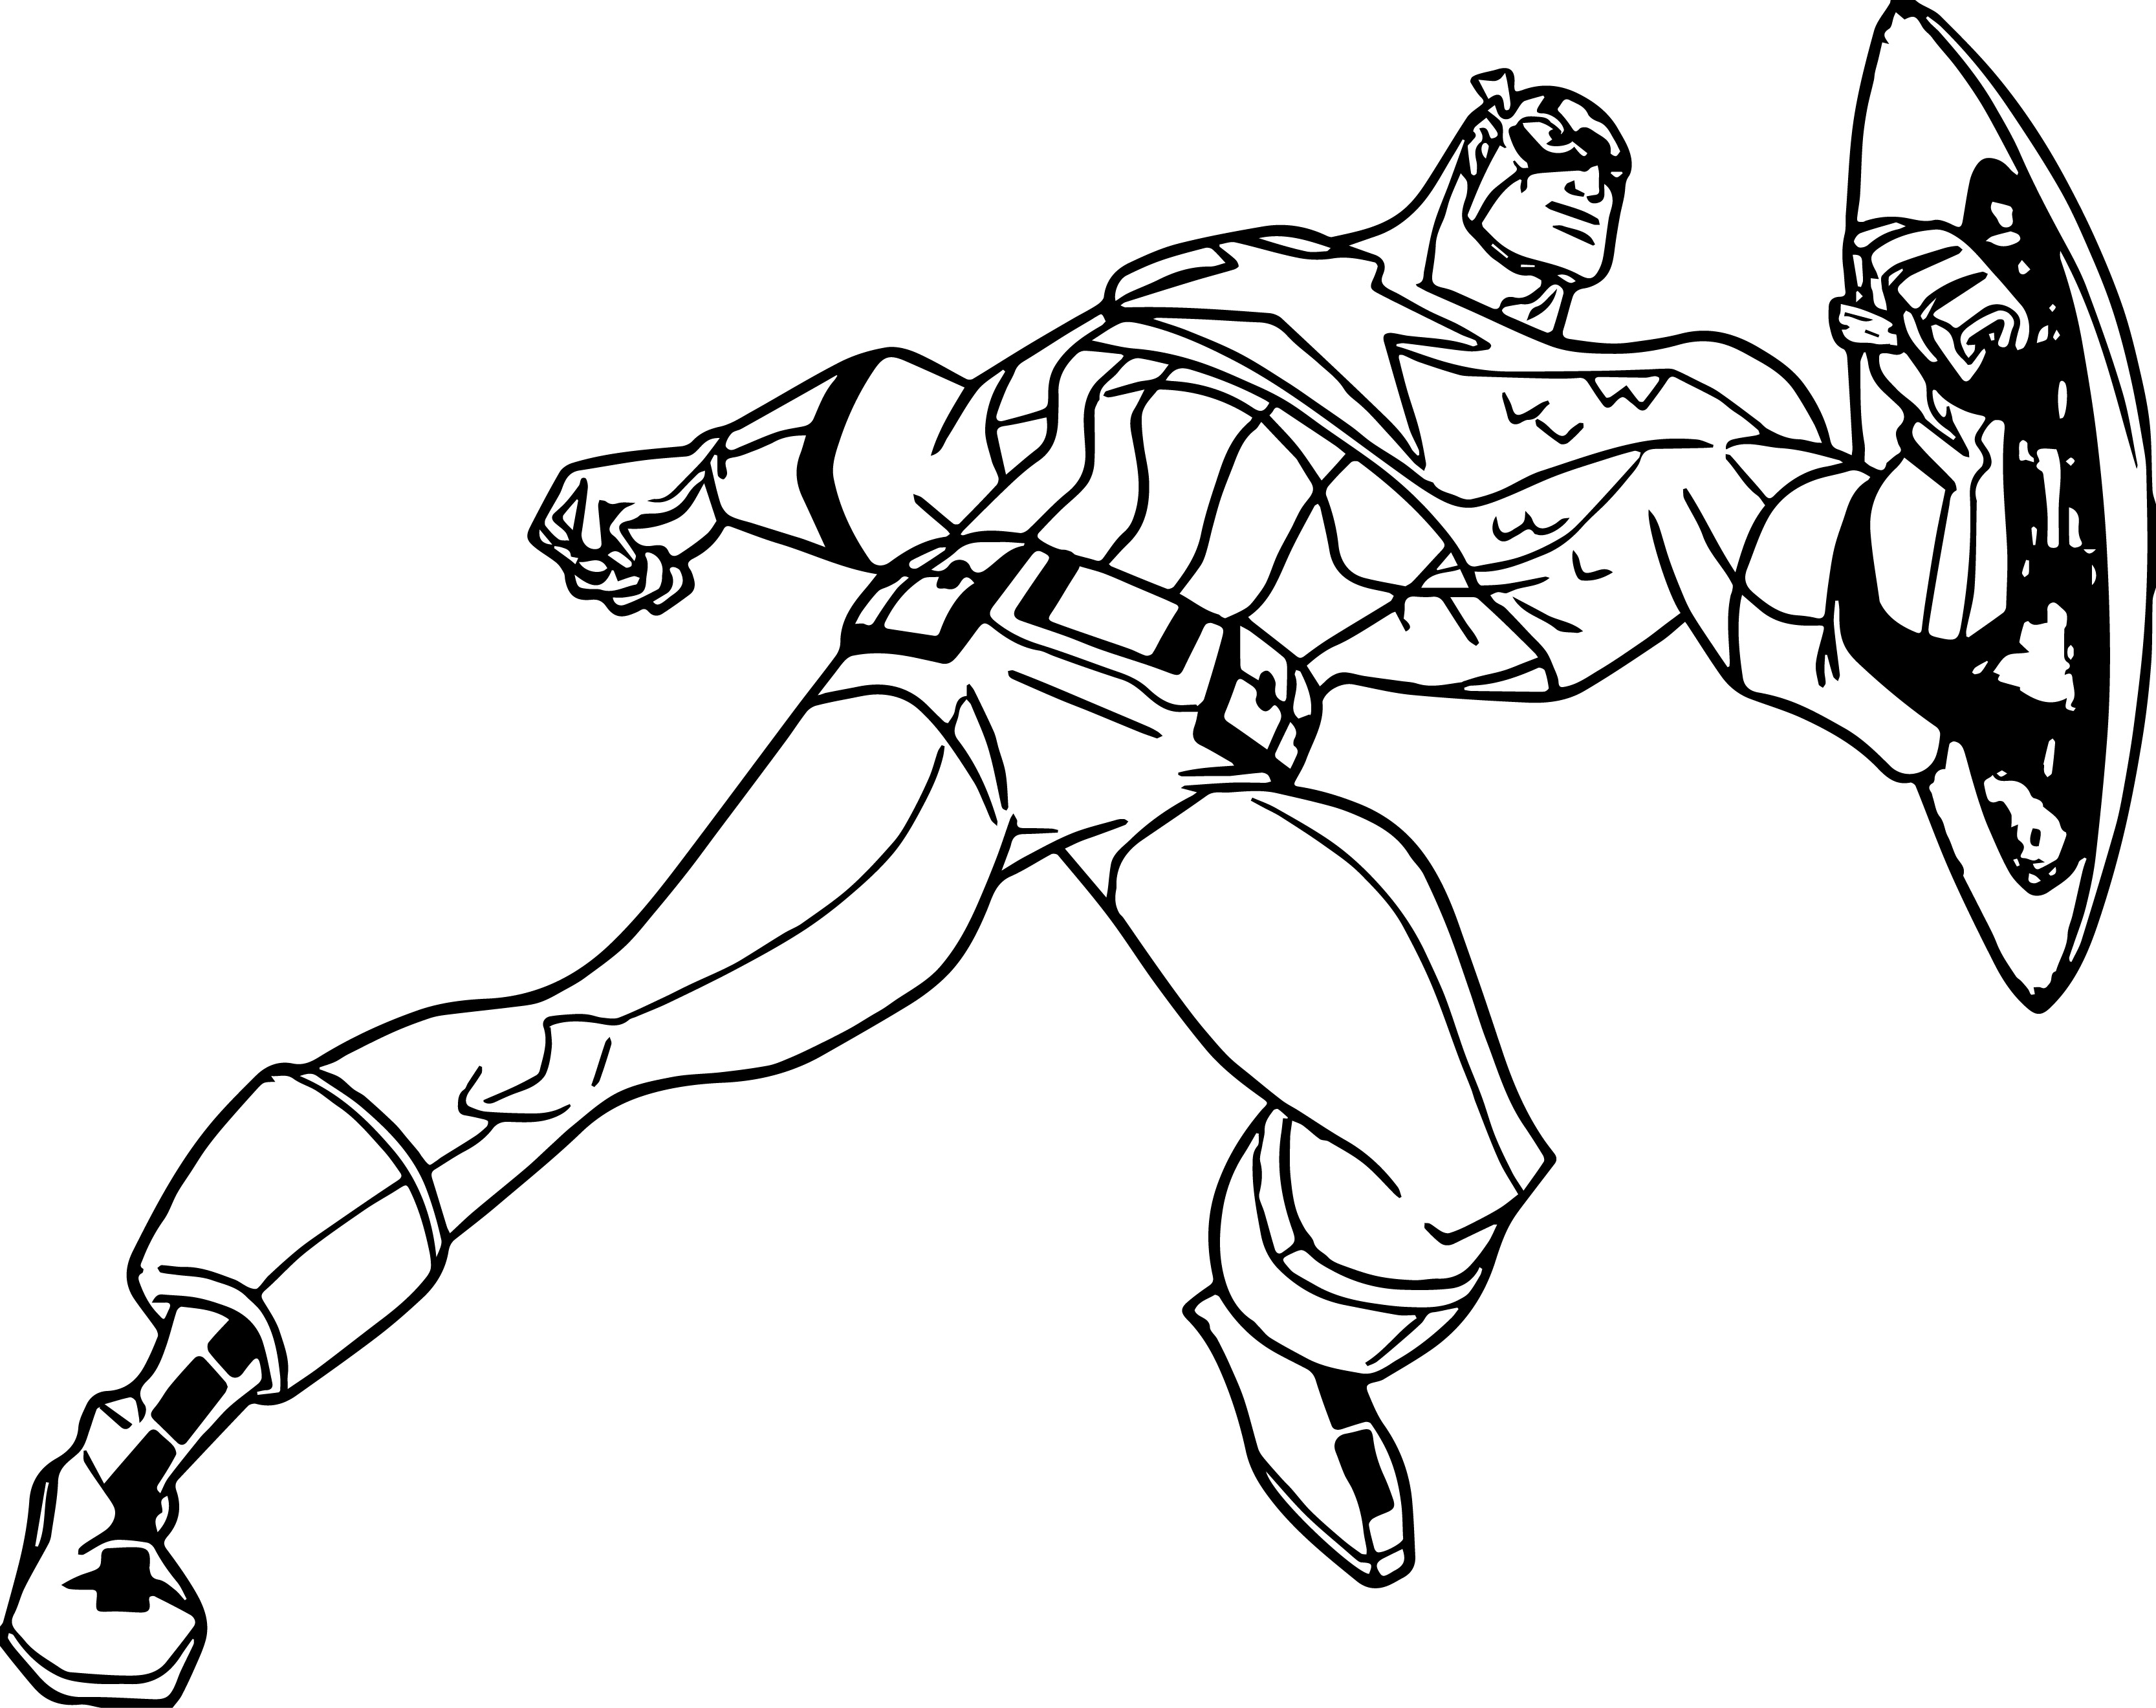 marvel captain marvel coloring pages marvel captain america coloring page wecoloringpagecom marvel coloring captain pages marvel